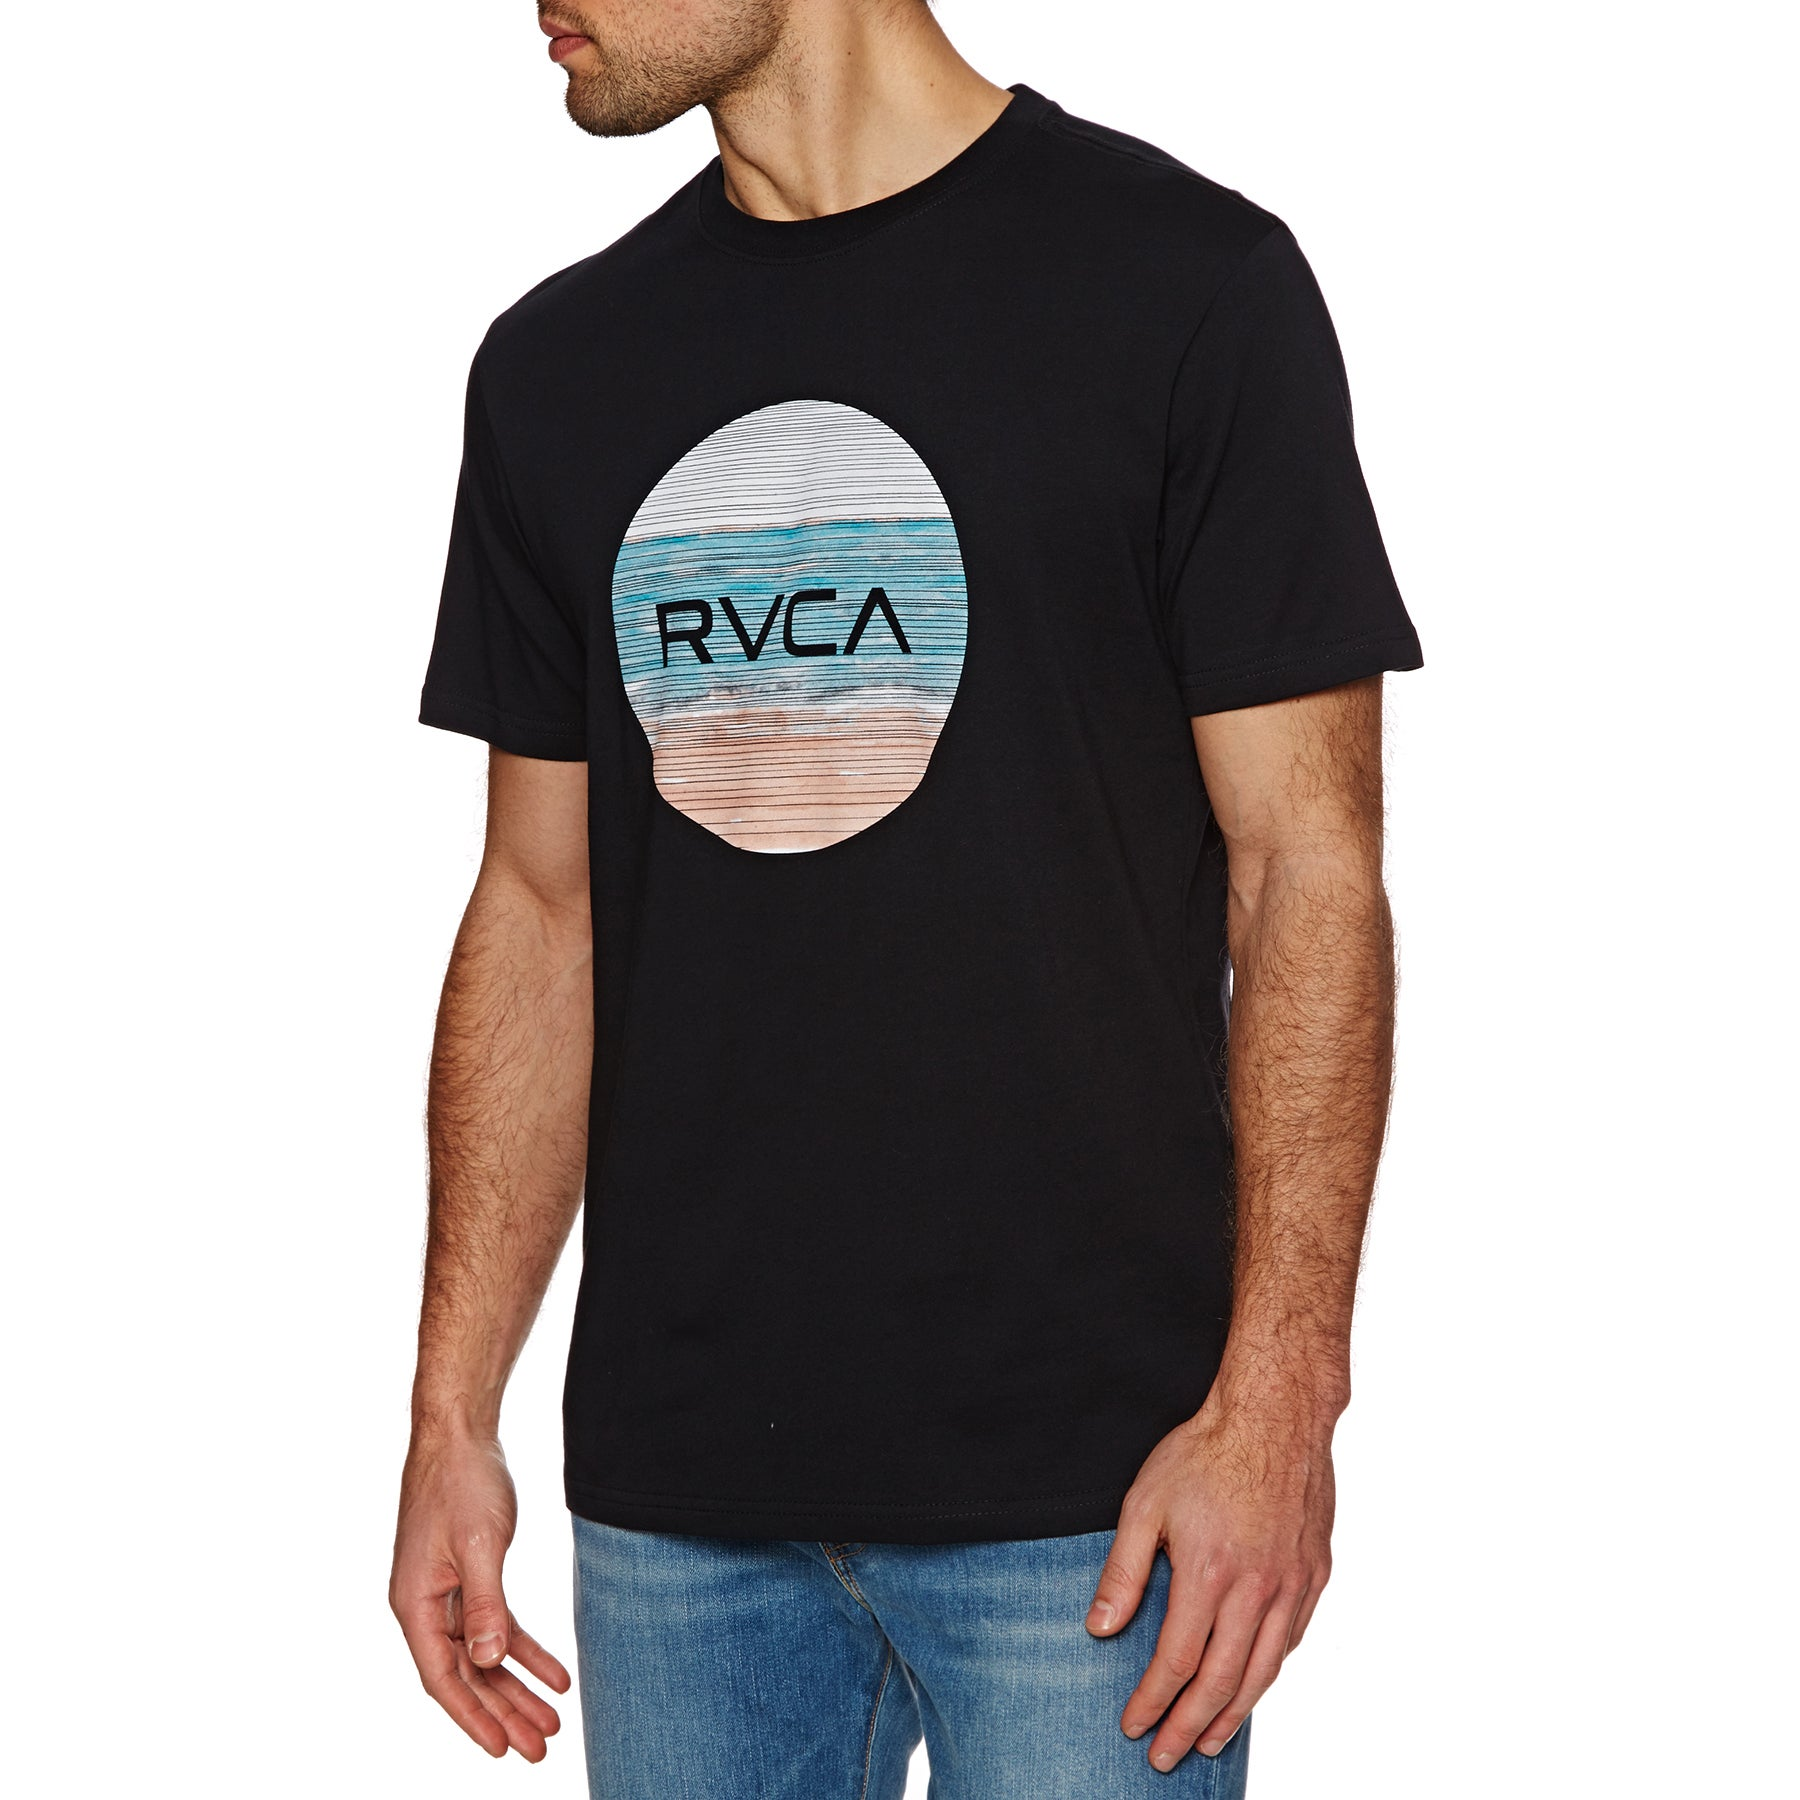 RVCA Motors Standard Short Sleeve T-Shirt